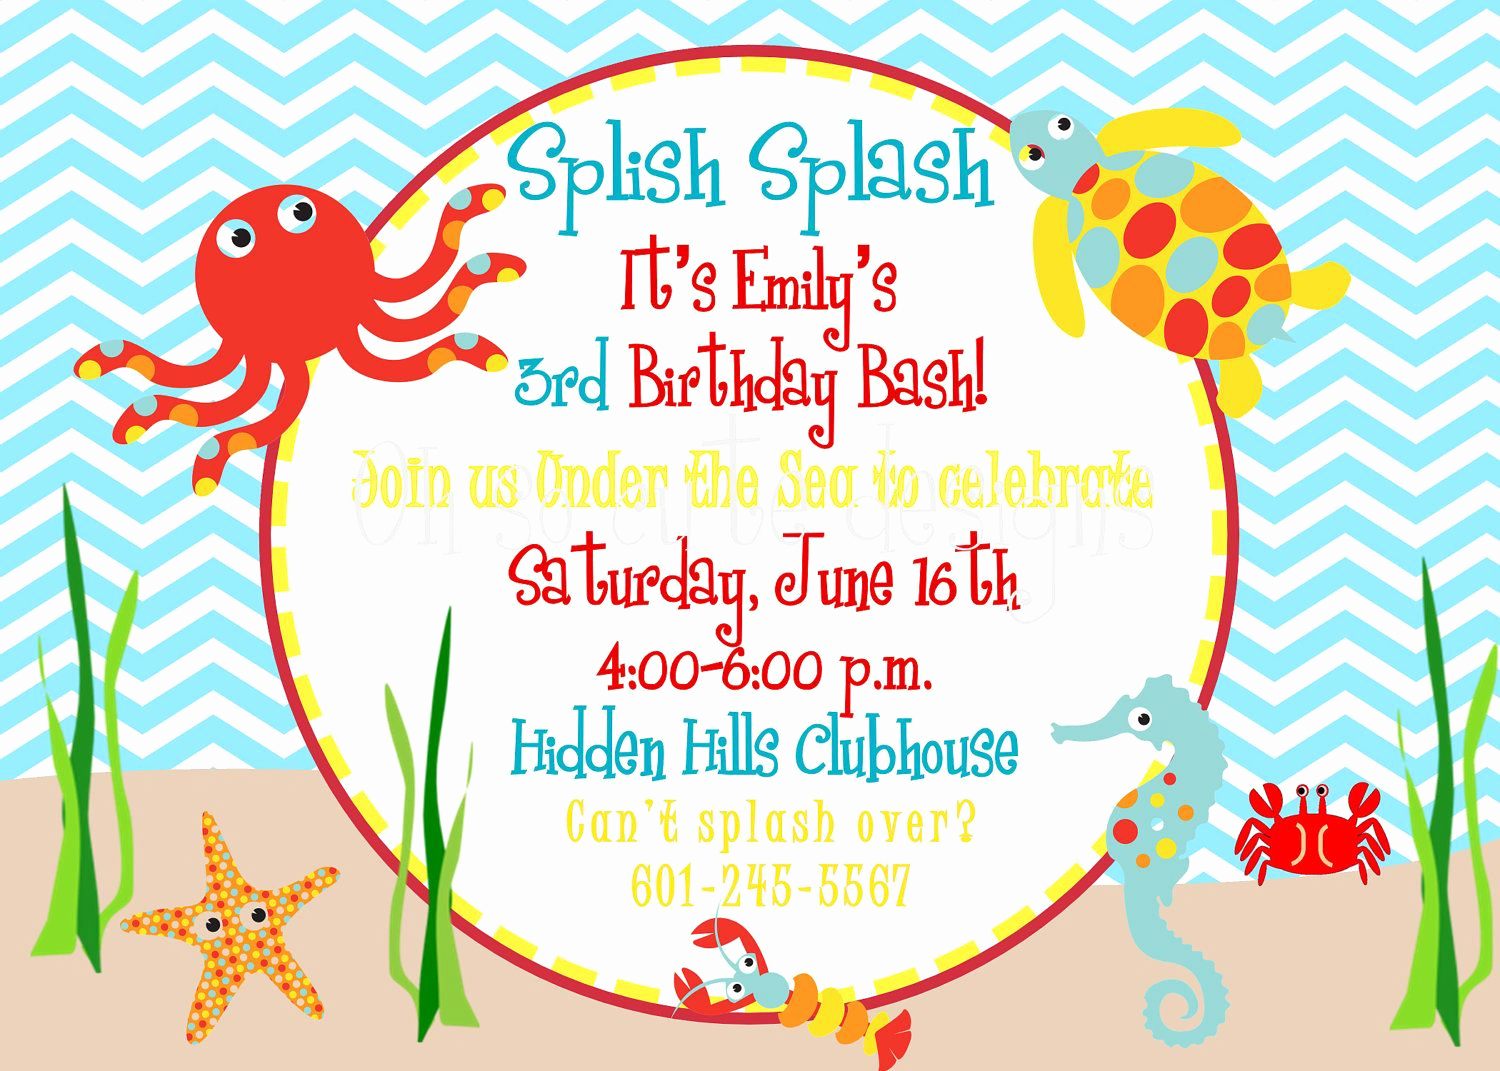 Under the Sea Invitation Template Inspirational Under the Sea Birthday Invitation $12 00 Via Etsy